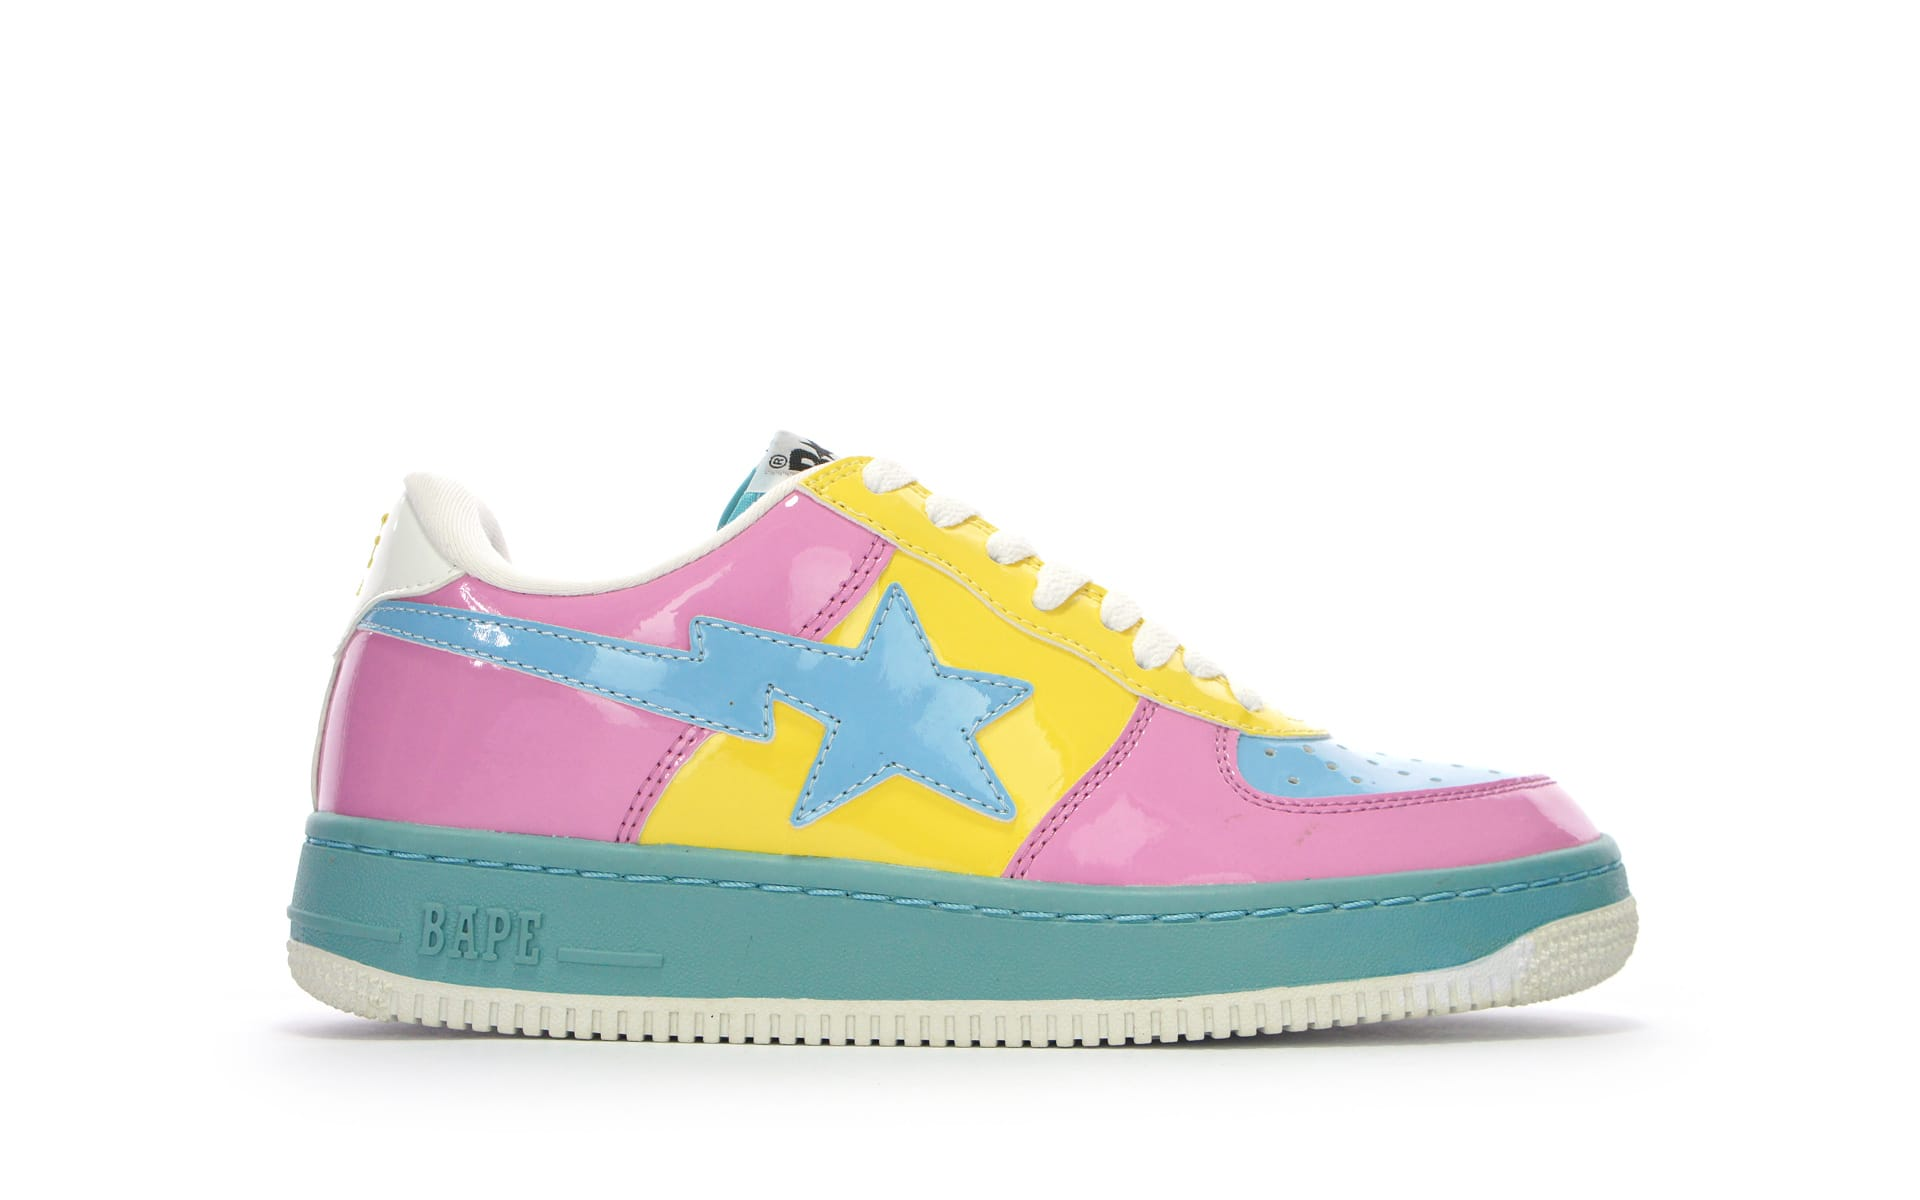 ec9fa678b Bape Patent Leather Bapesta